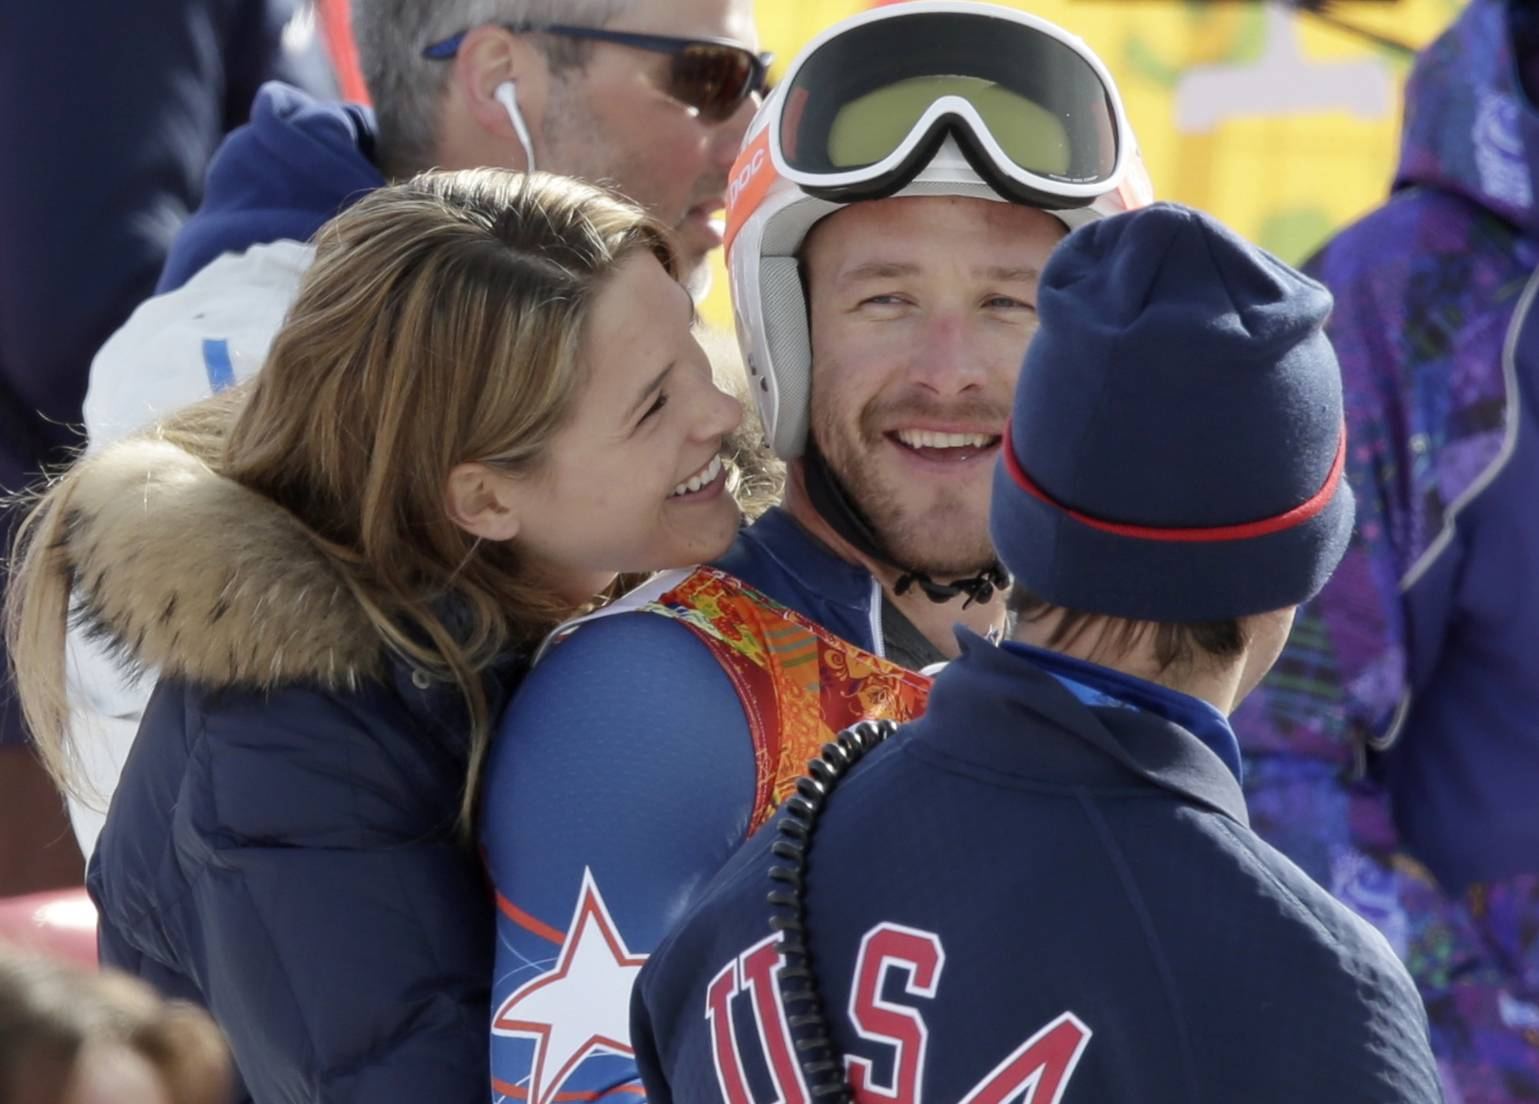 United States' Bode Miller is joined by his wife Morgan after he finished the second run in the men's giant slalom at the Sochi 2014 Winter Olympics, Wednesday, Feb. 19, 2014, in Krasnaya Polyana, Russia.